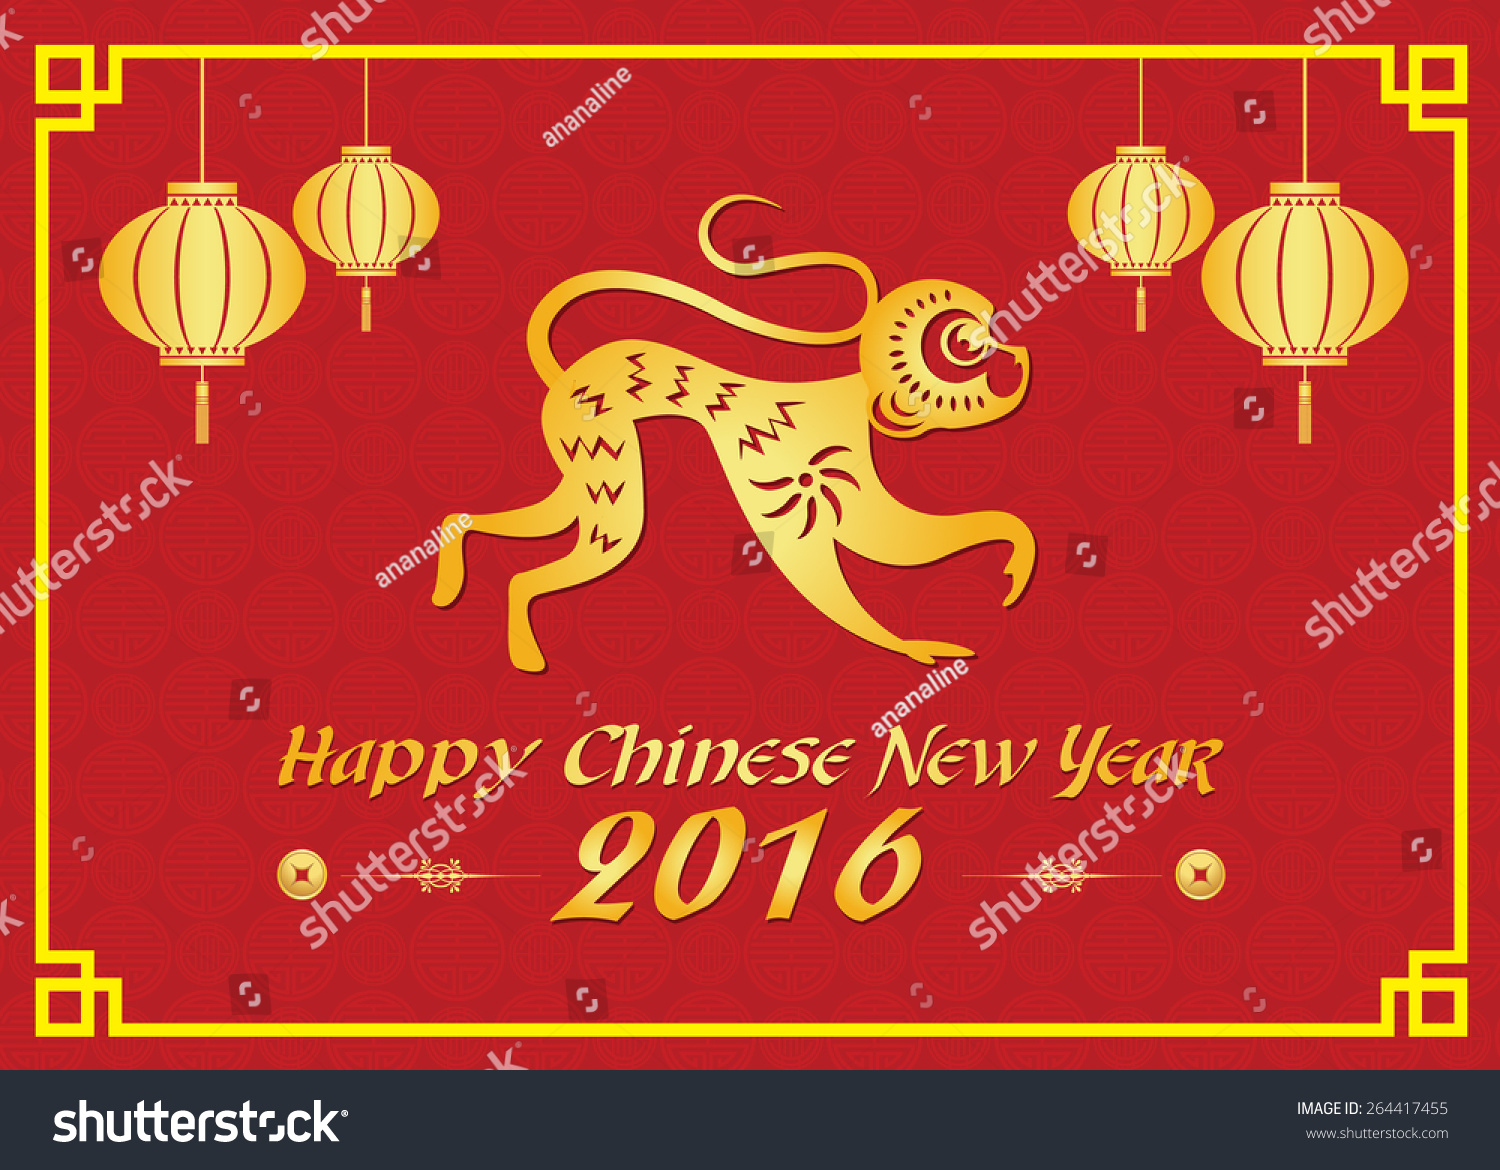 Happy Chinese New Year 2016 Card Stock Vector 264417455 - Shutterstock